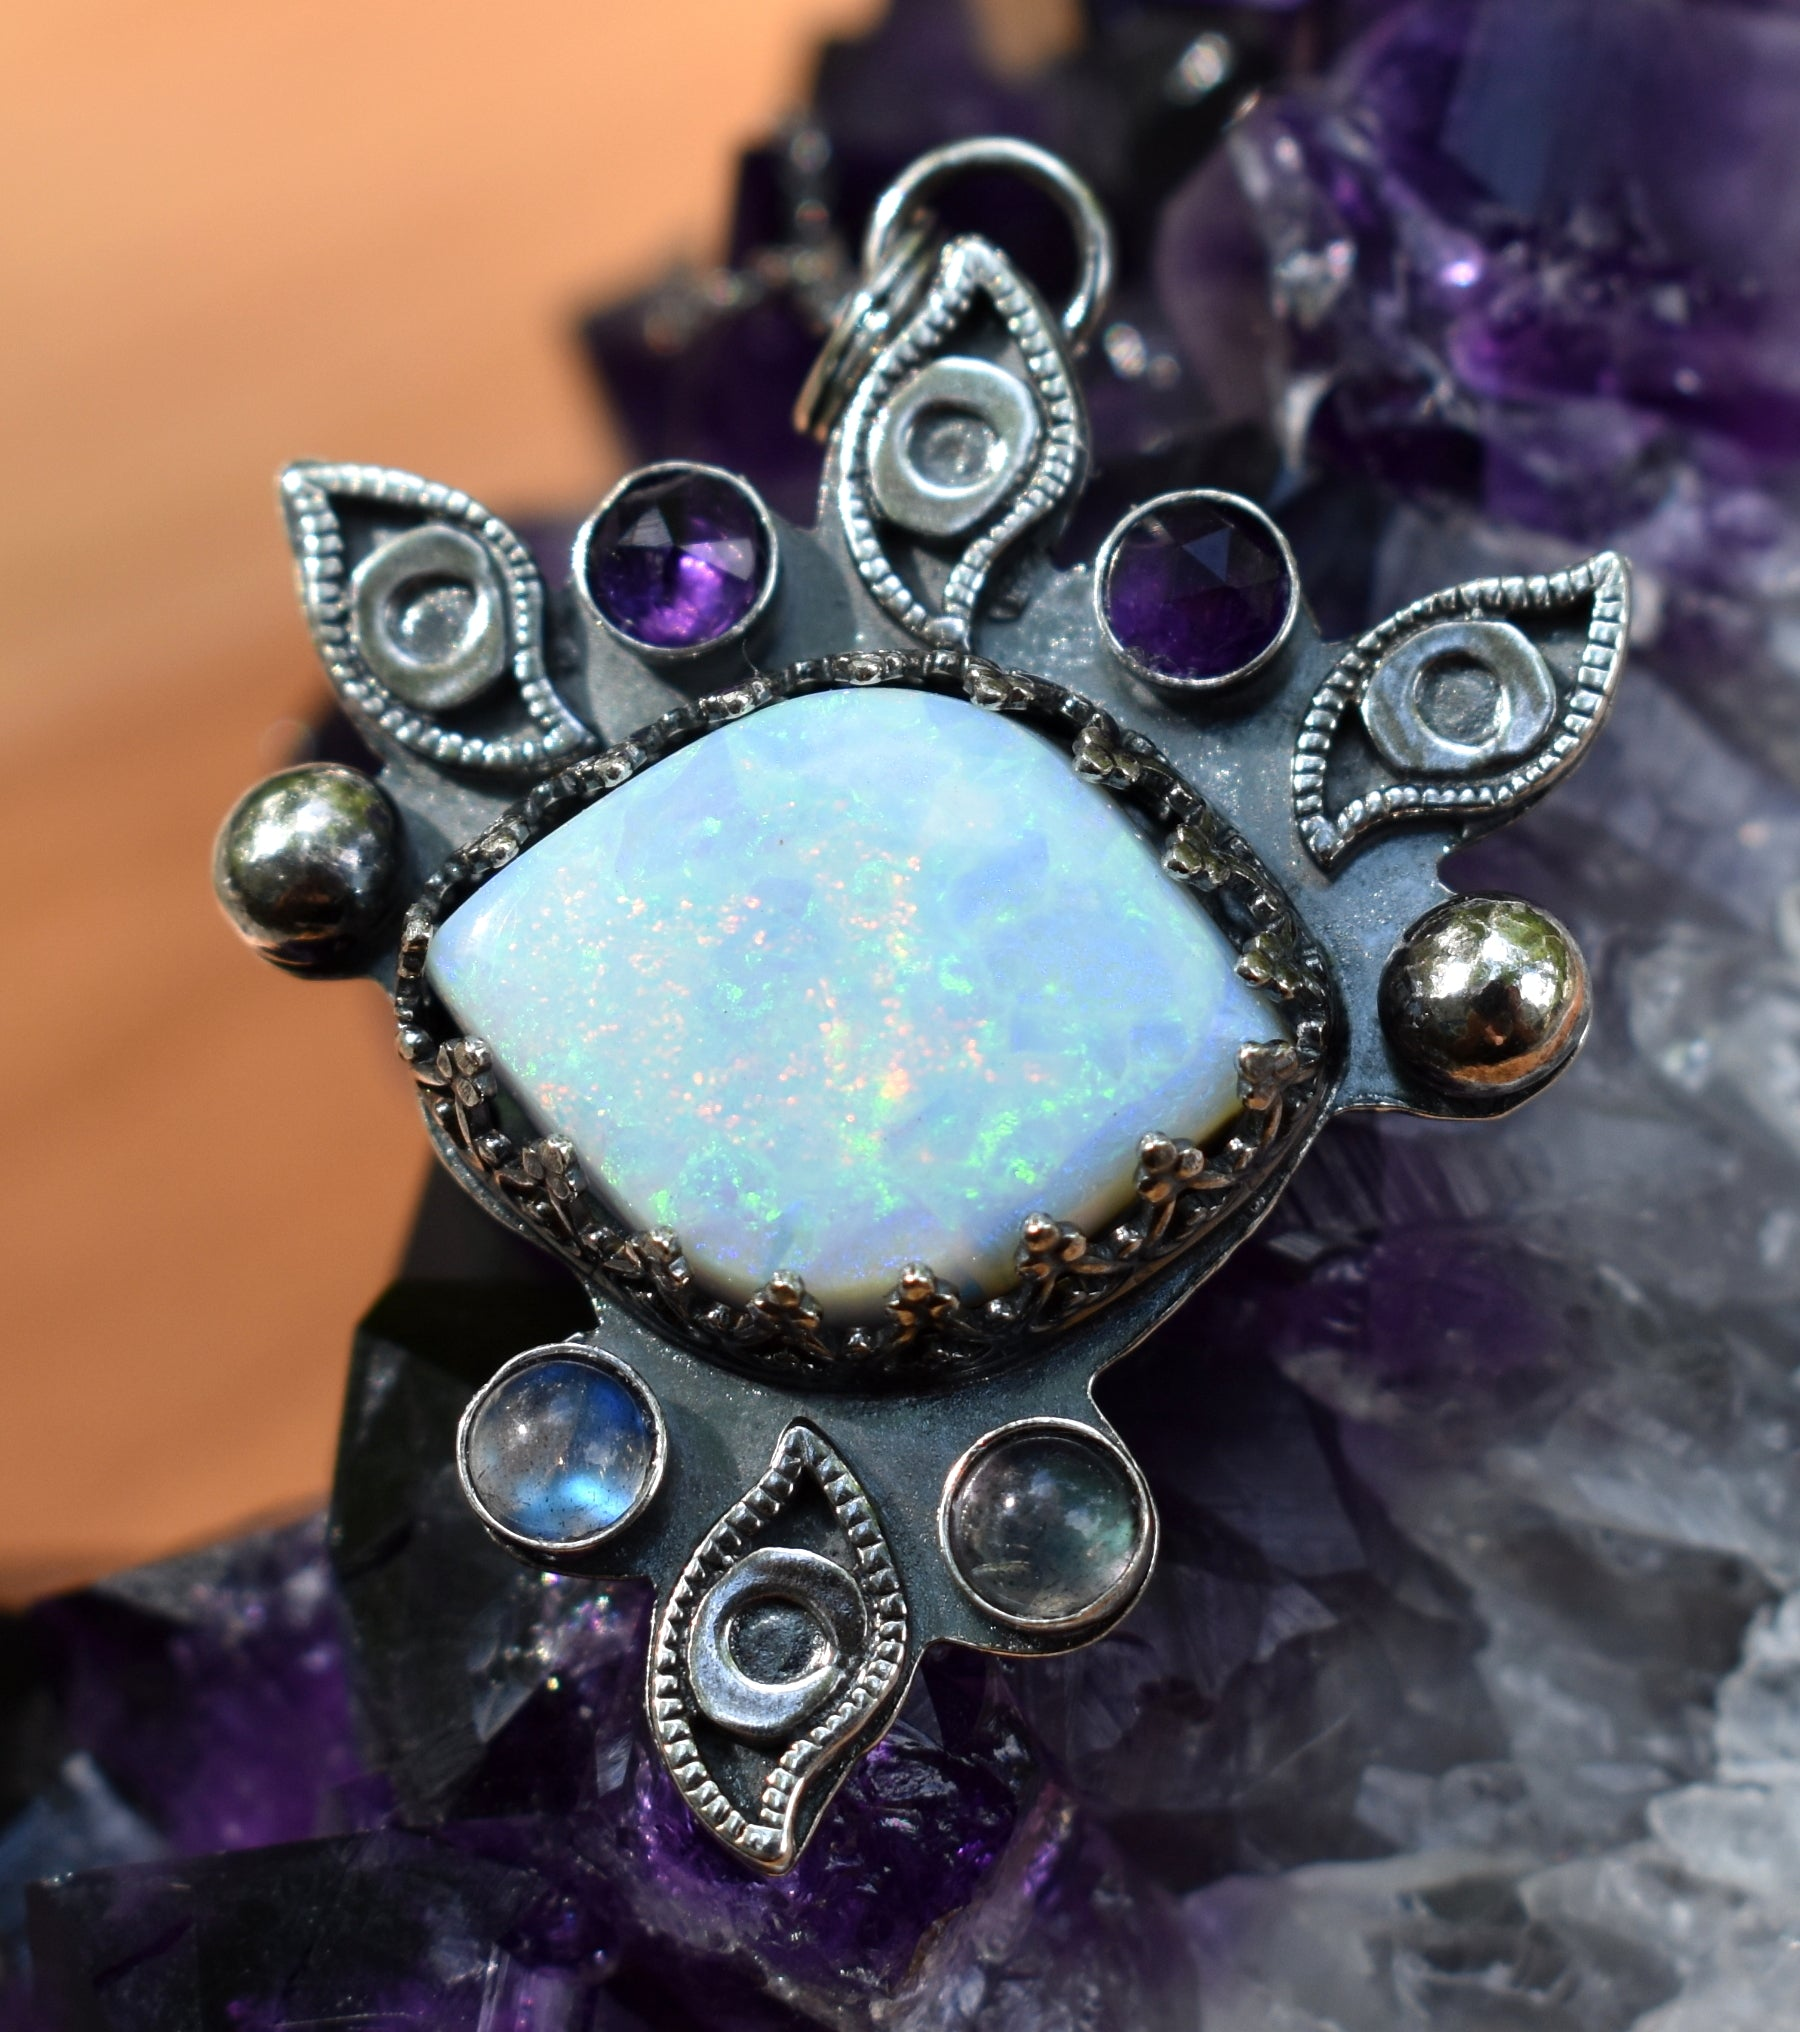 Atlantis Opal Cosmic Eye Amulet #1-Third Eye Collection